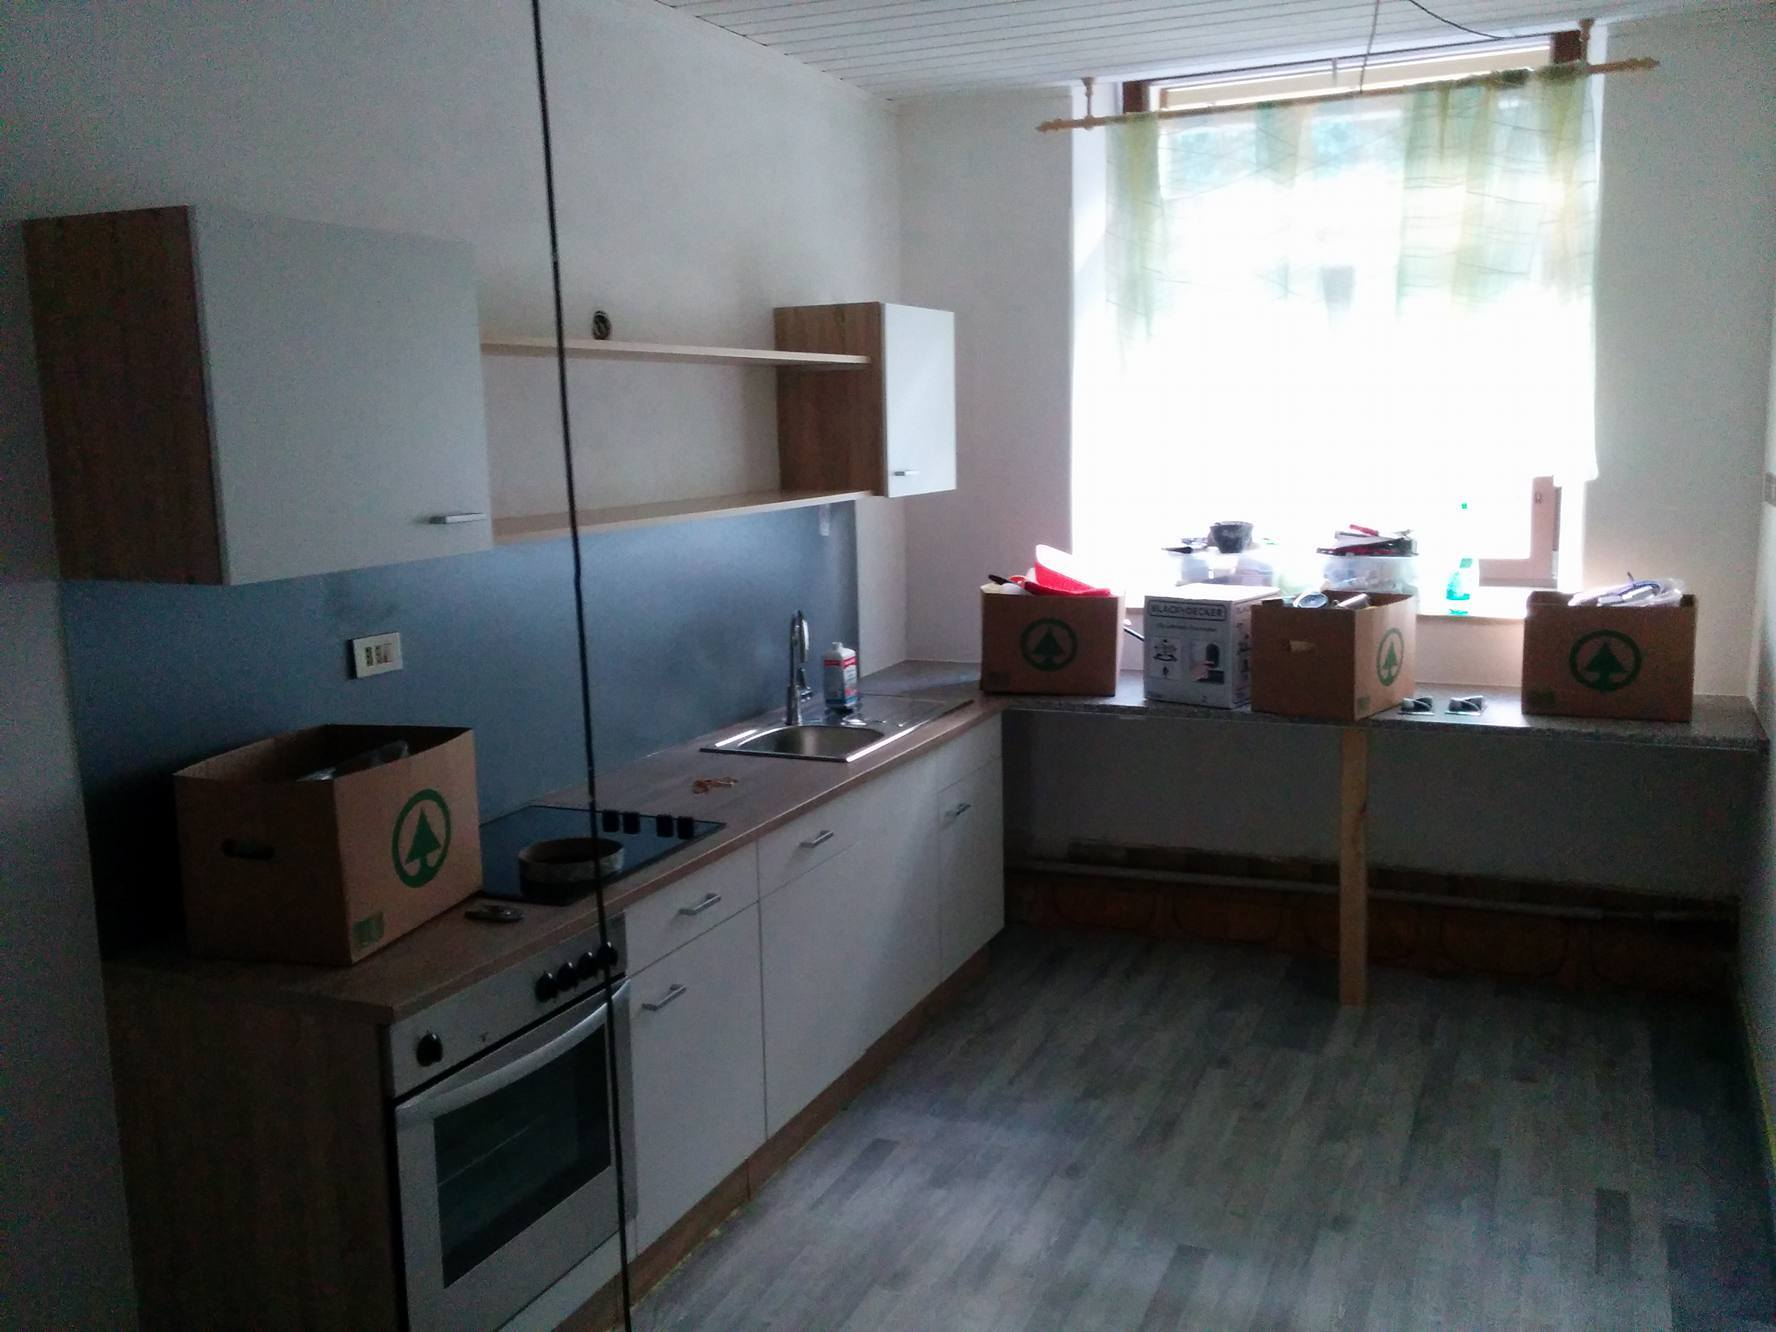 the old kitchen